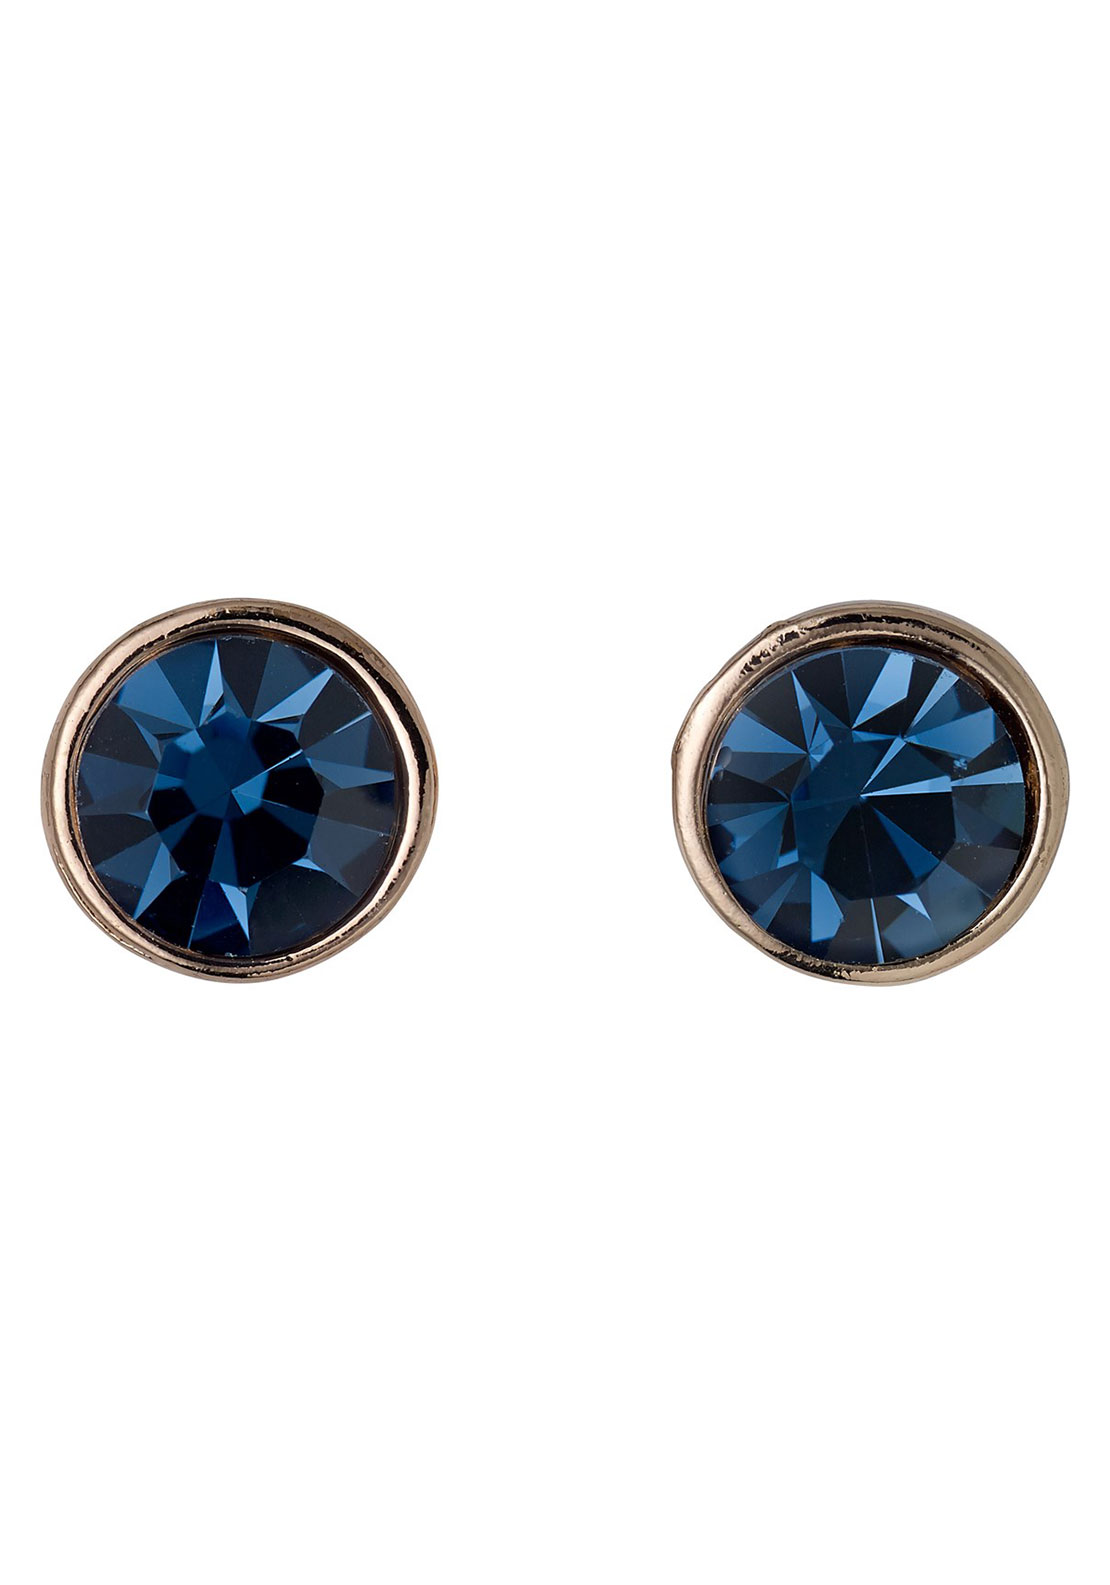 Pilgrim Blue Hematite Stud Earrings, Rose Gold